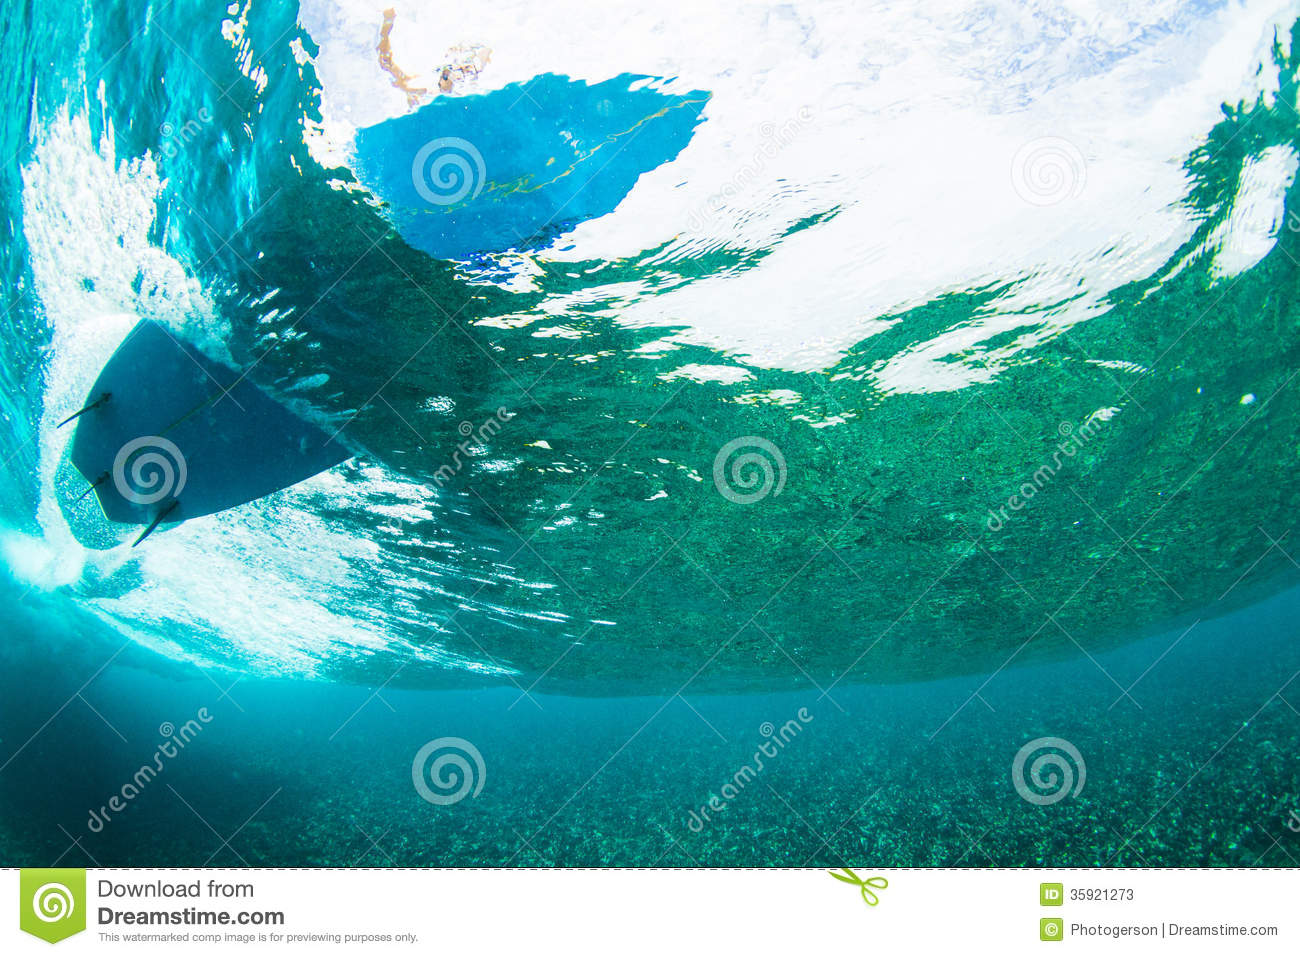 Surfer On Tropical Wave Underwater Vision Stock PhotosImage 265